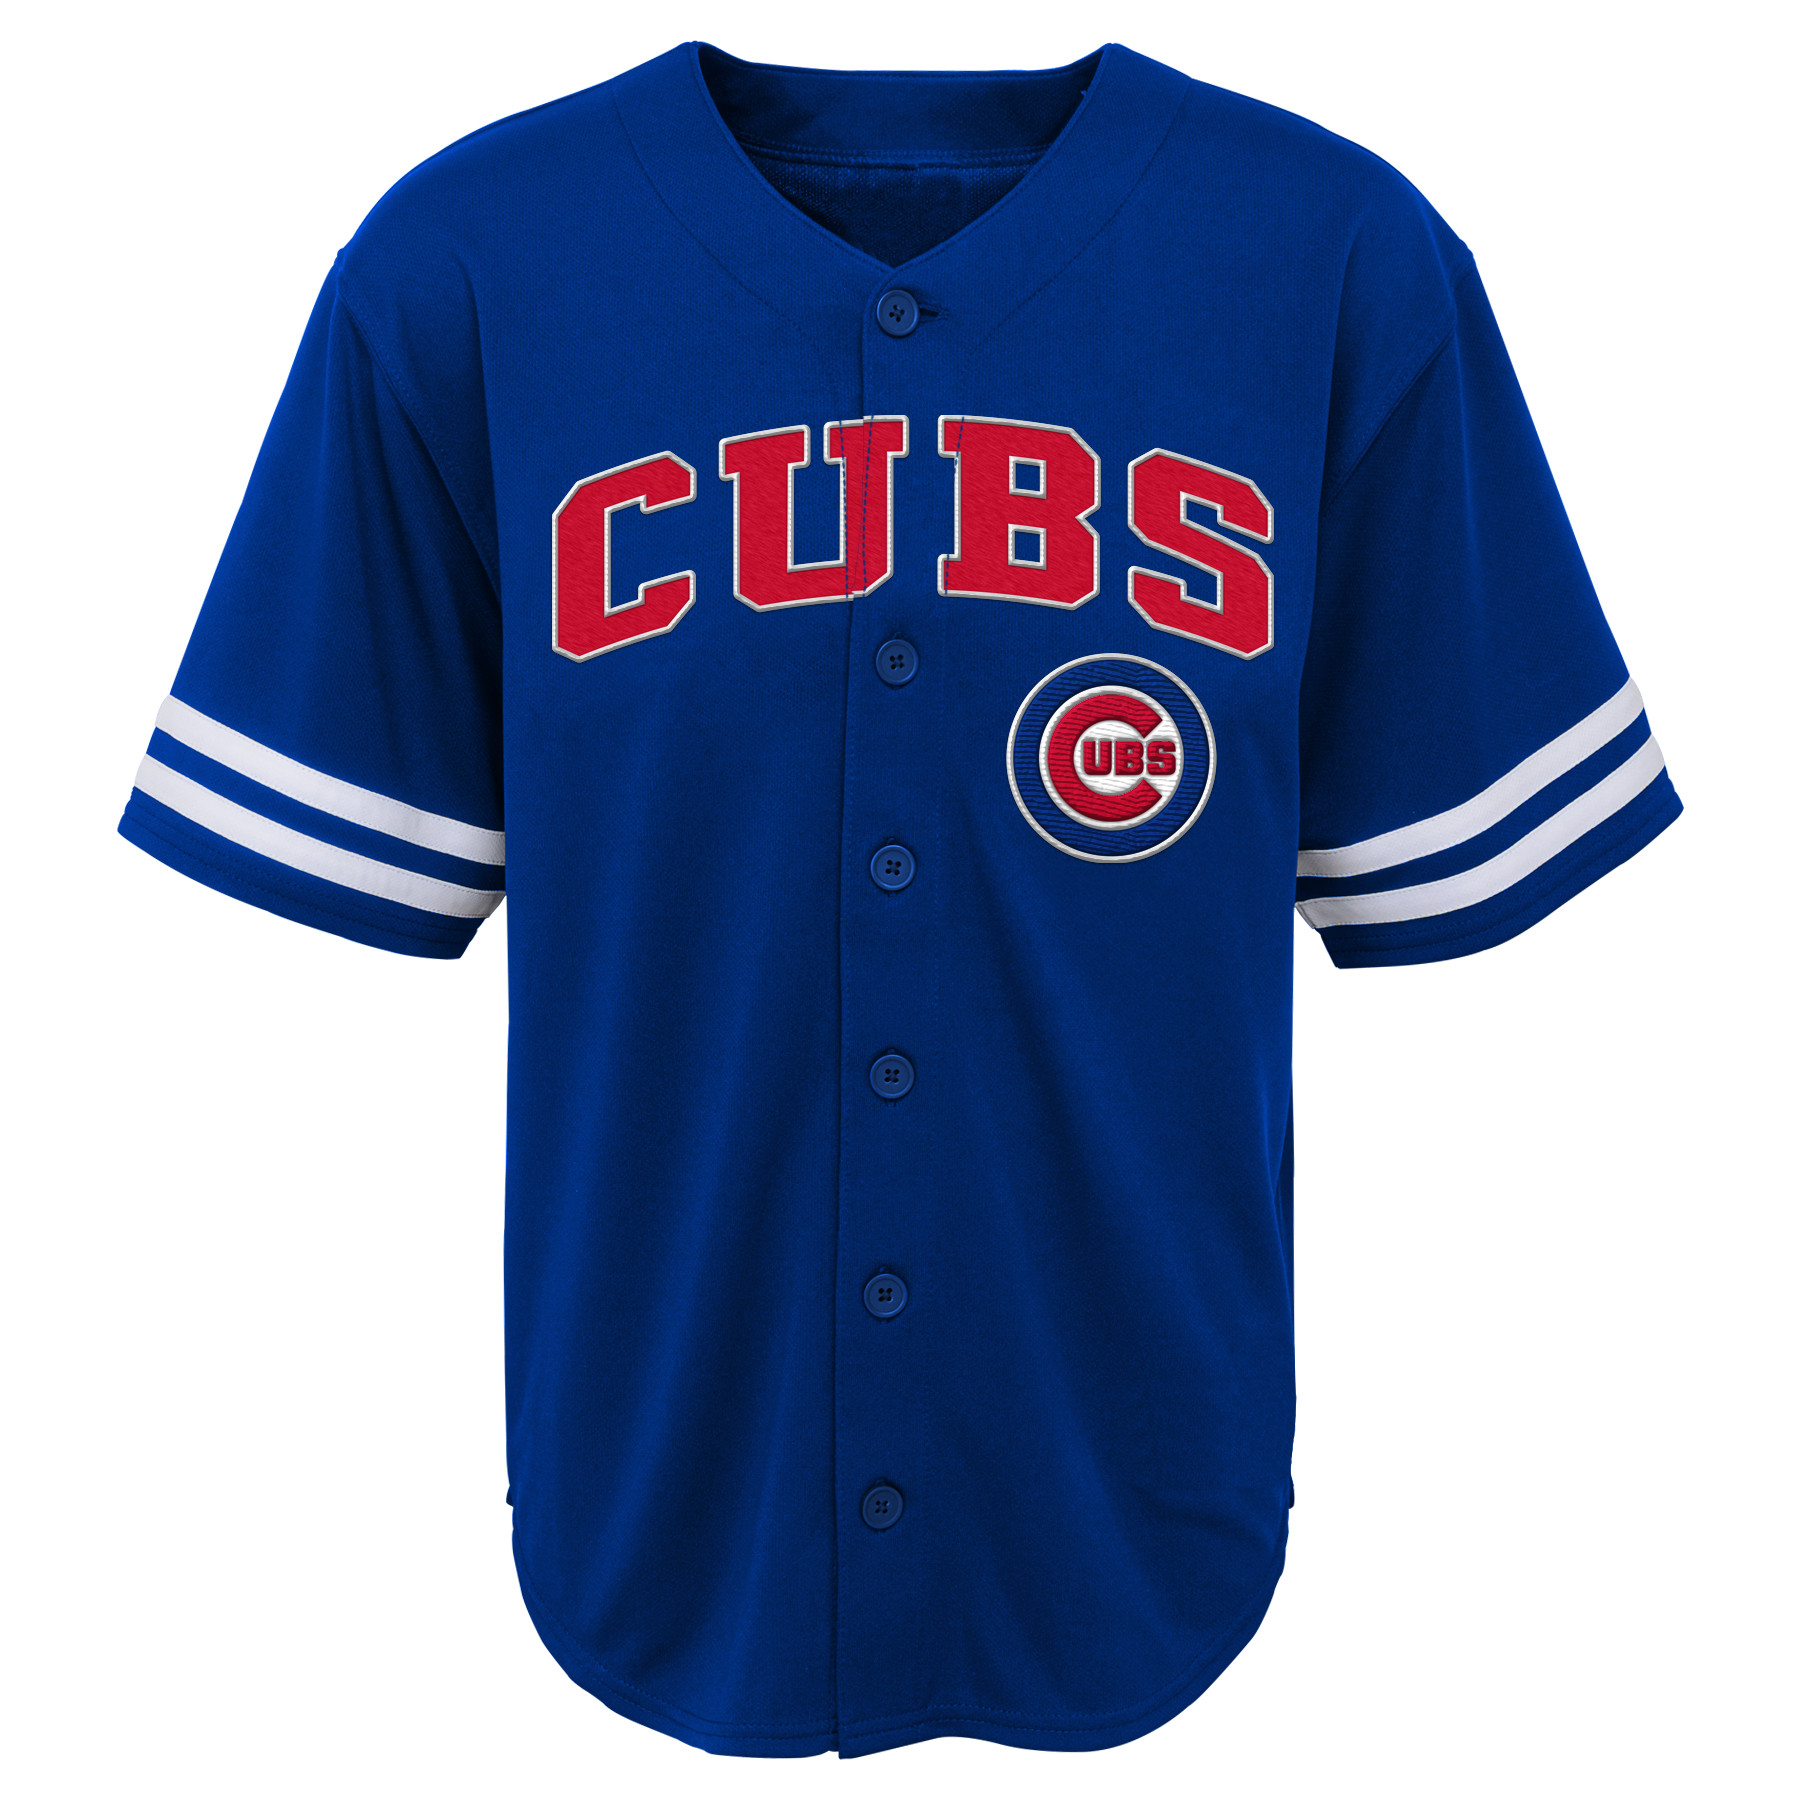 MLB Chicago CUBS TEE Short Sleeve Boys Fashion Jersey Tee 60% Cotton 40% Polyester BLACK Team Tee 4-18